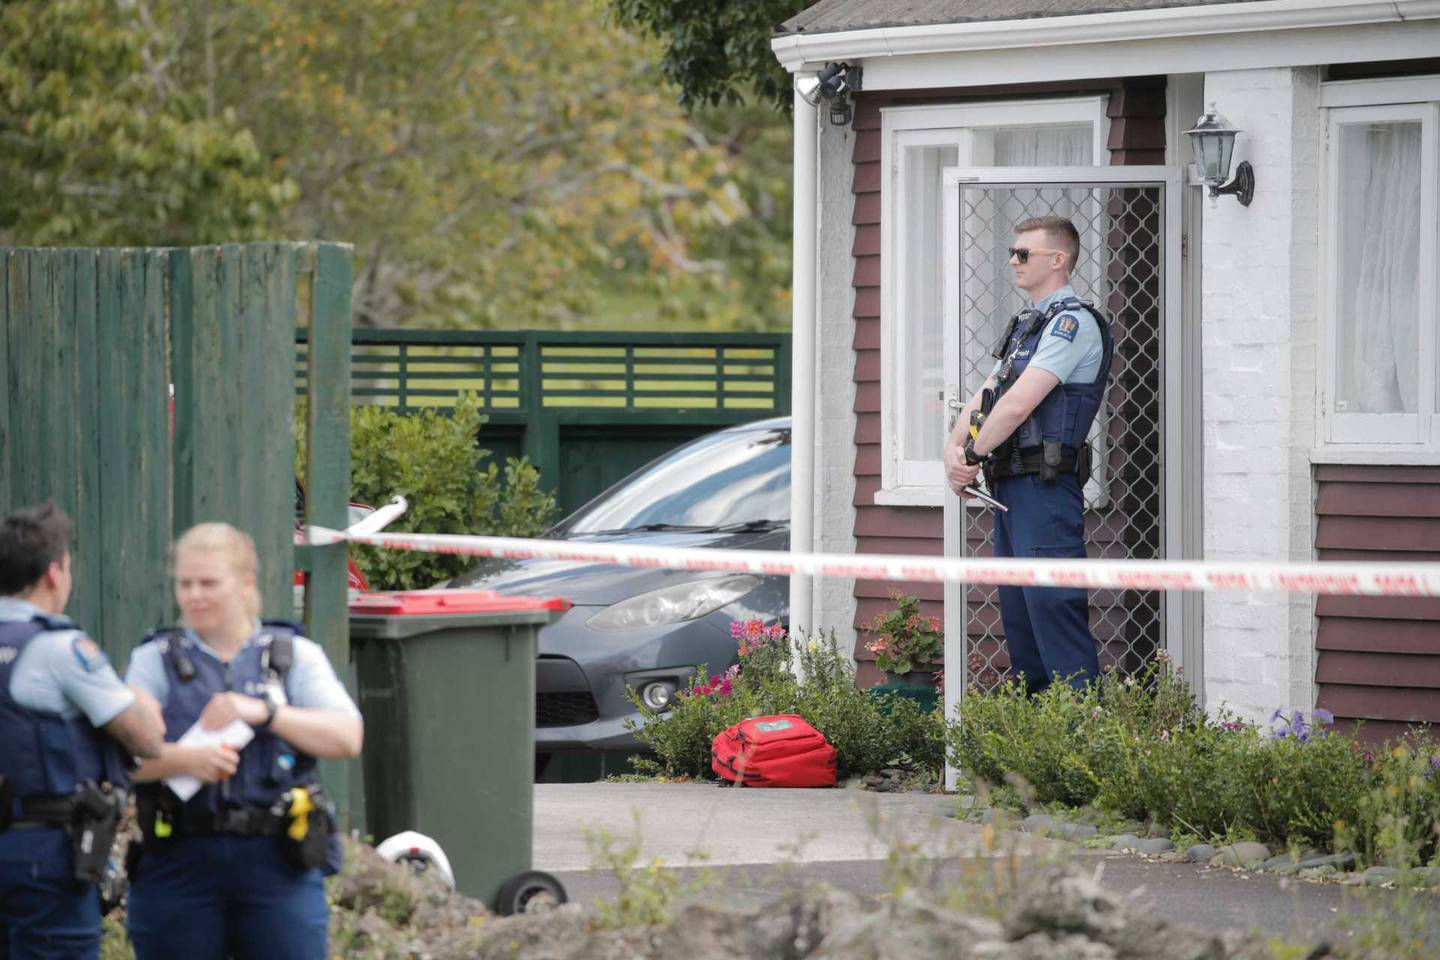 Police have cordoned off the house on The Drive in the Auckland suburb of Epsom.